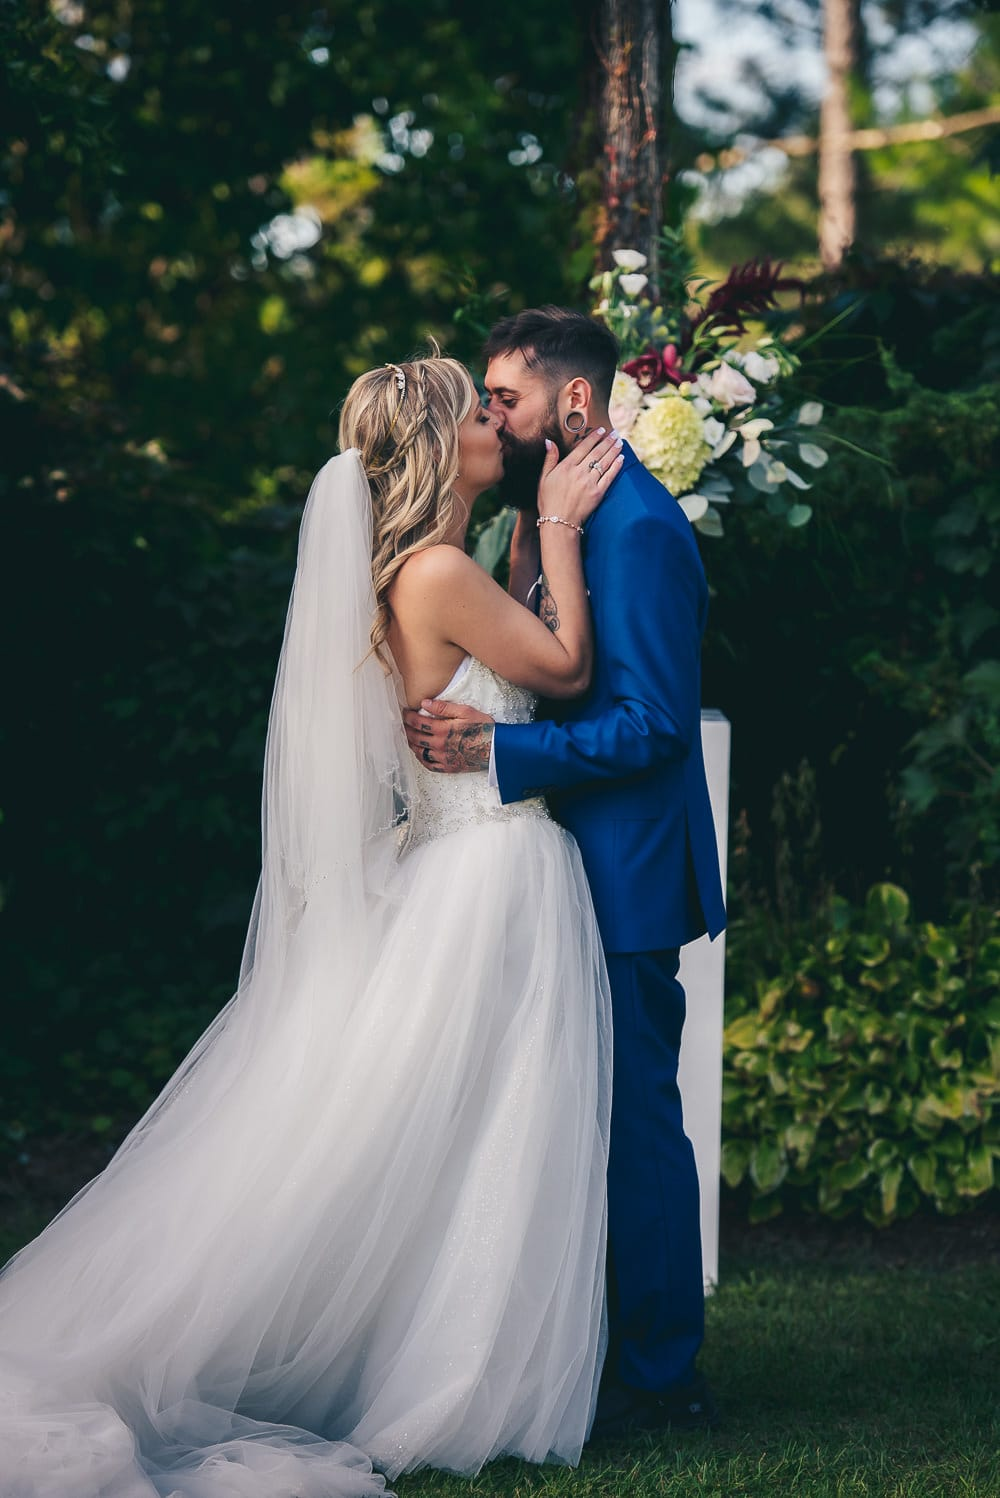 first kiss during wedding ceremony at craigowan golf club